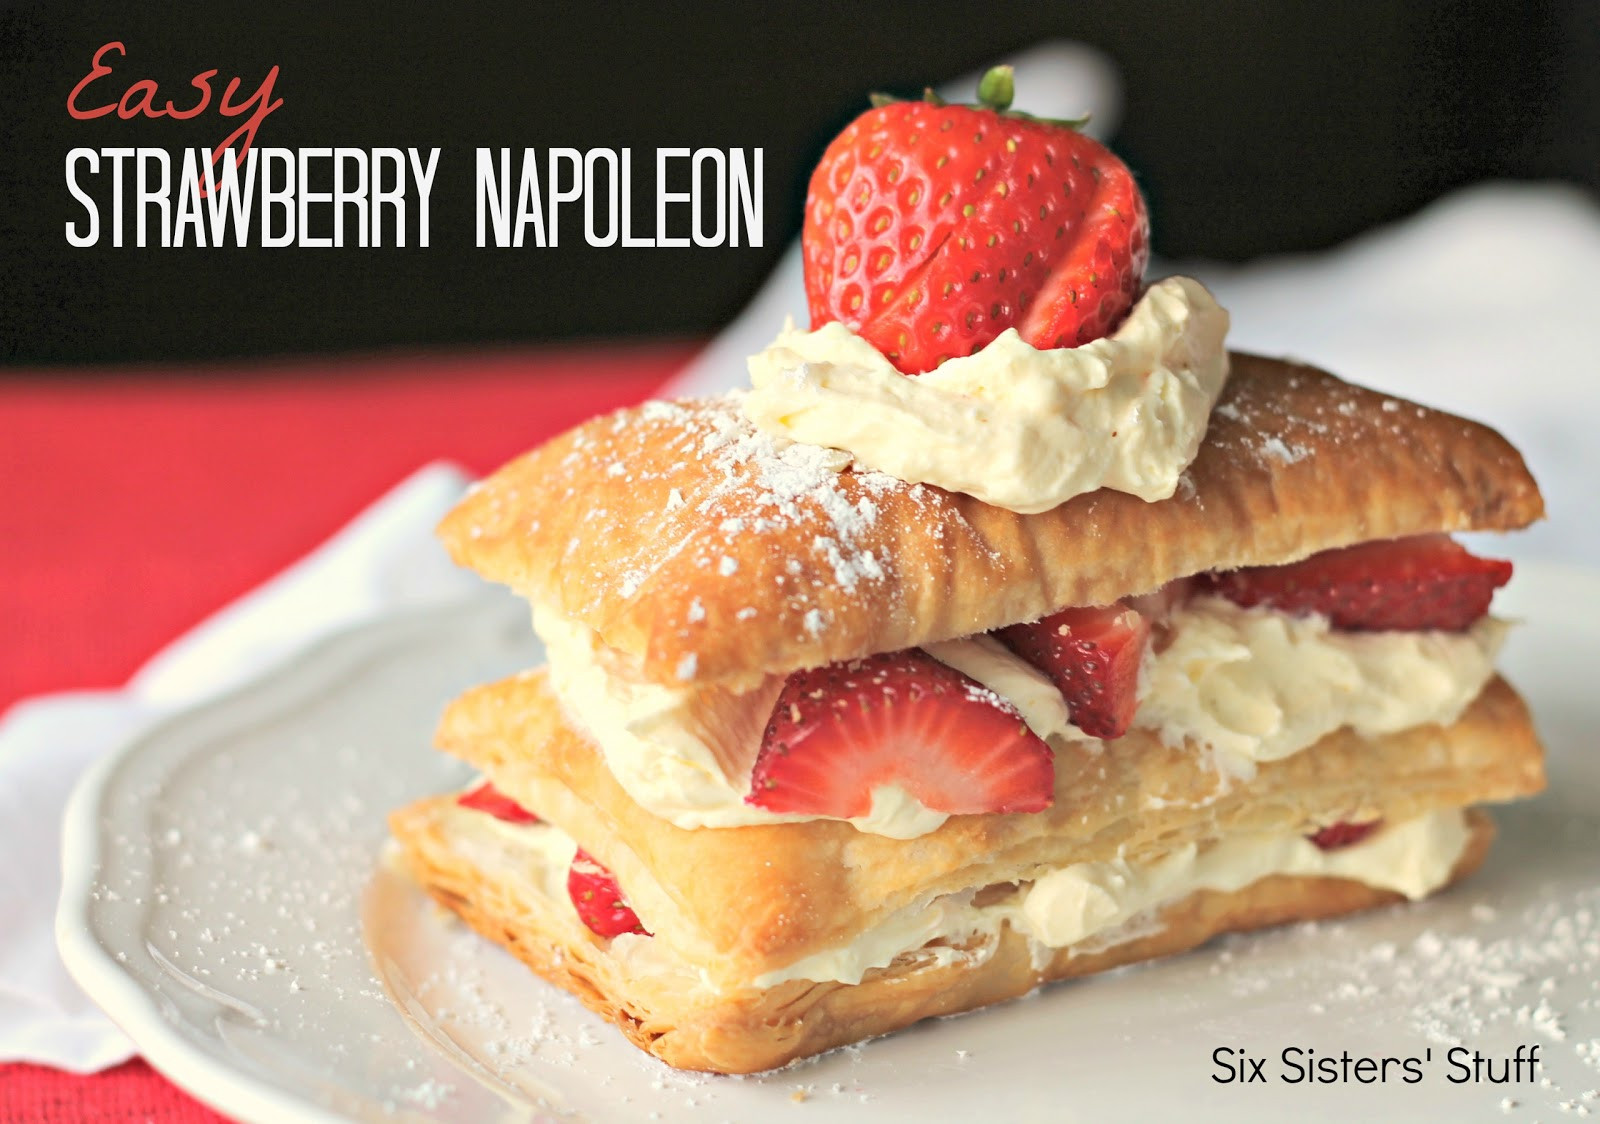 Strawberry Dessert Recipes Easy  Easy Strawberry Napoleon Recipe